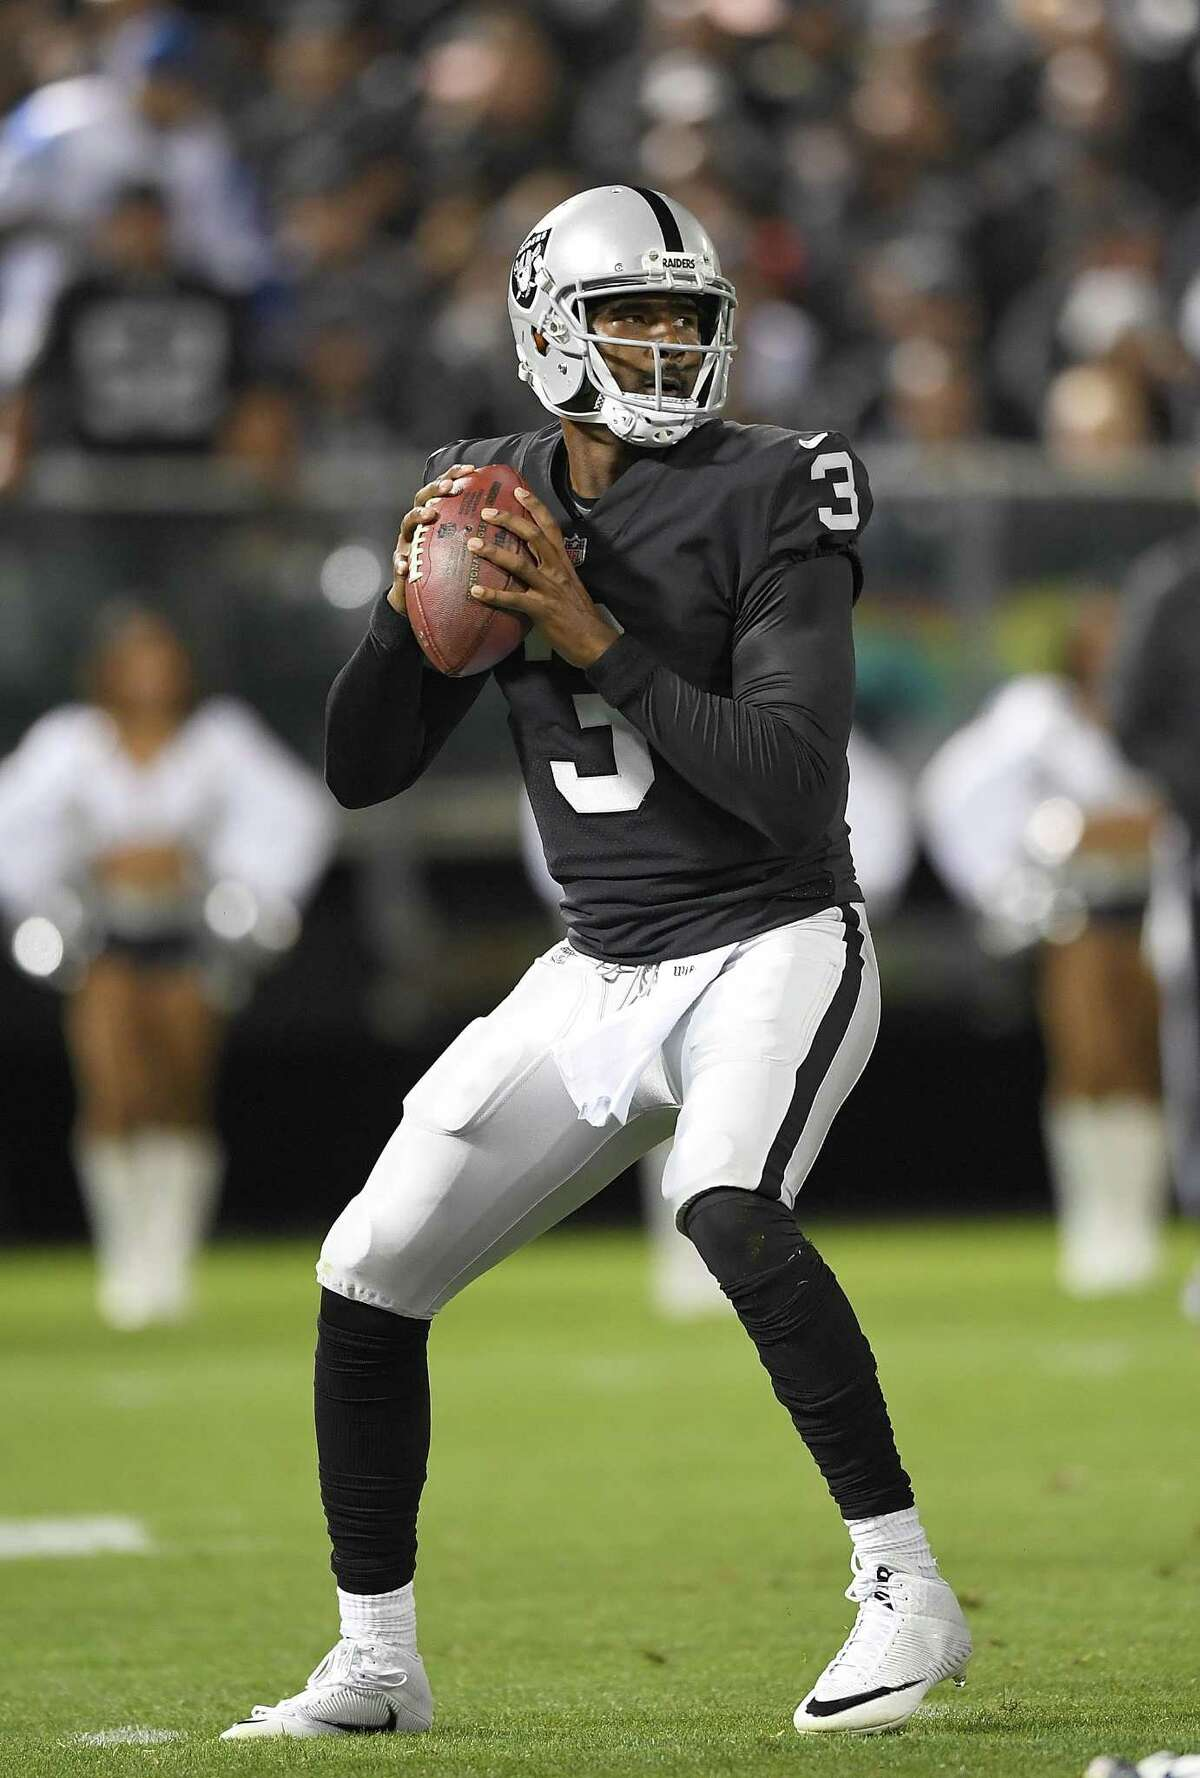 OAKLAND, CA - AUGUST 19: EJ Manuel #3 of the Oakland Raiders drops back to pass against the Los Angeles Rams during the third quarter of their preseason NFL football game at Oakland-Alameda County Coliseum on August 19, 2017 in Oakland, California. (Photo by Thearon W. Henderson/Getty Images)